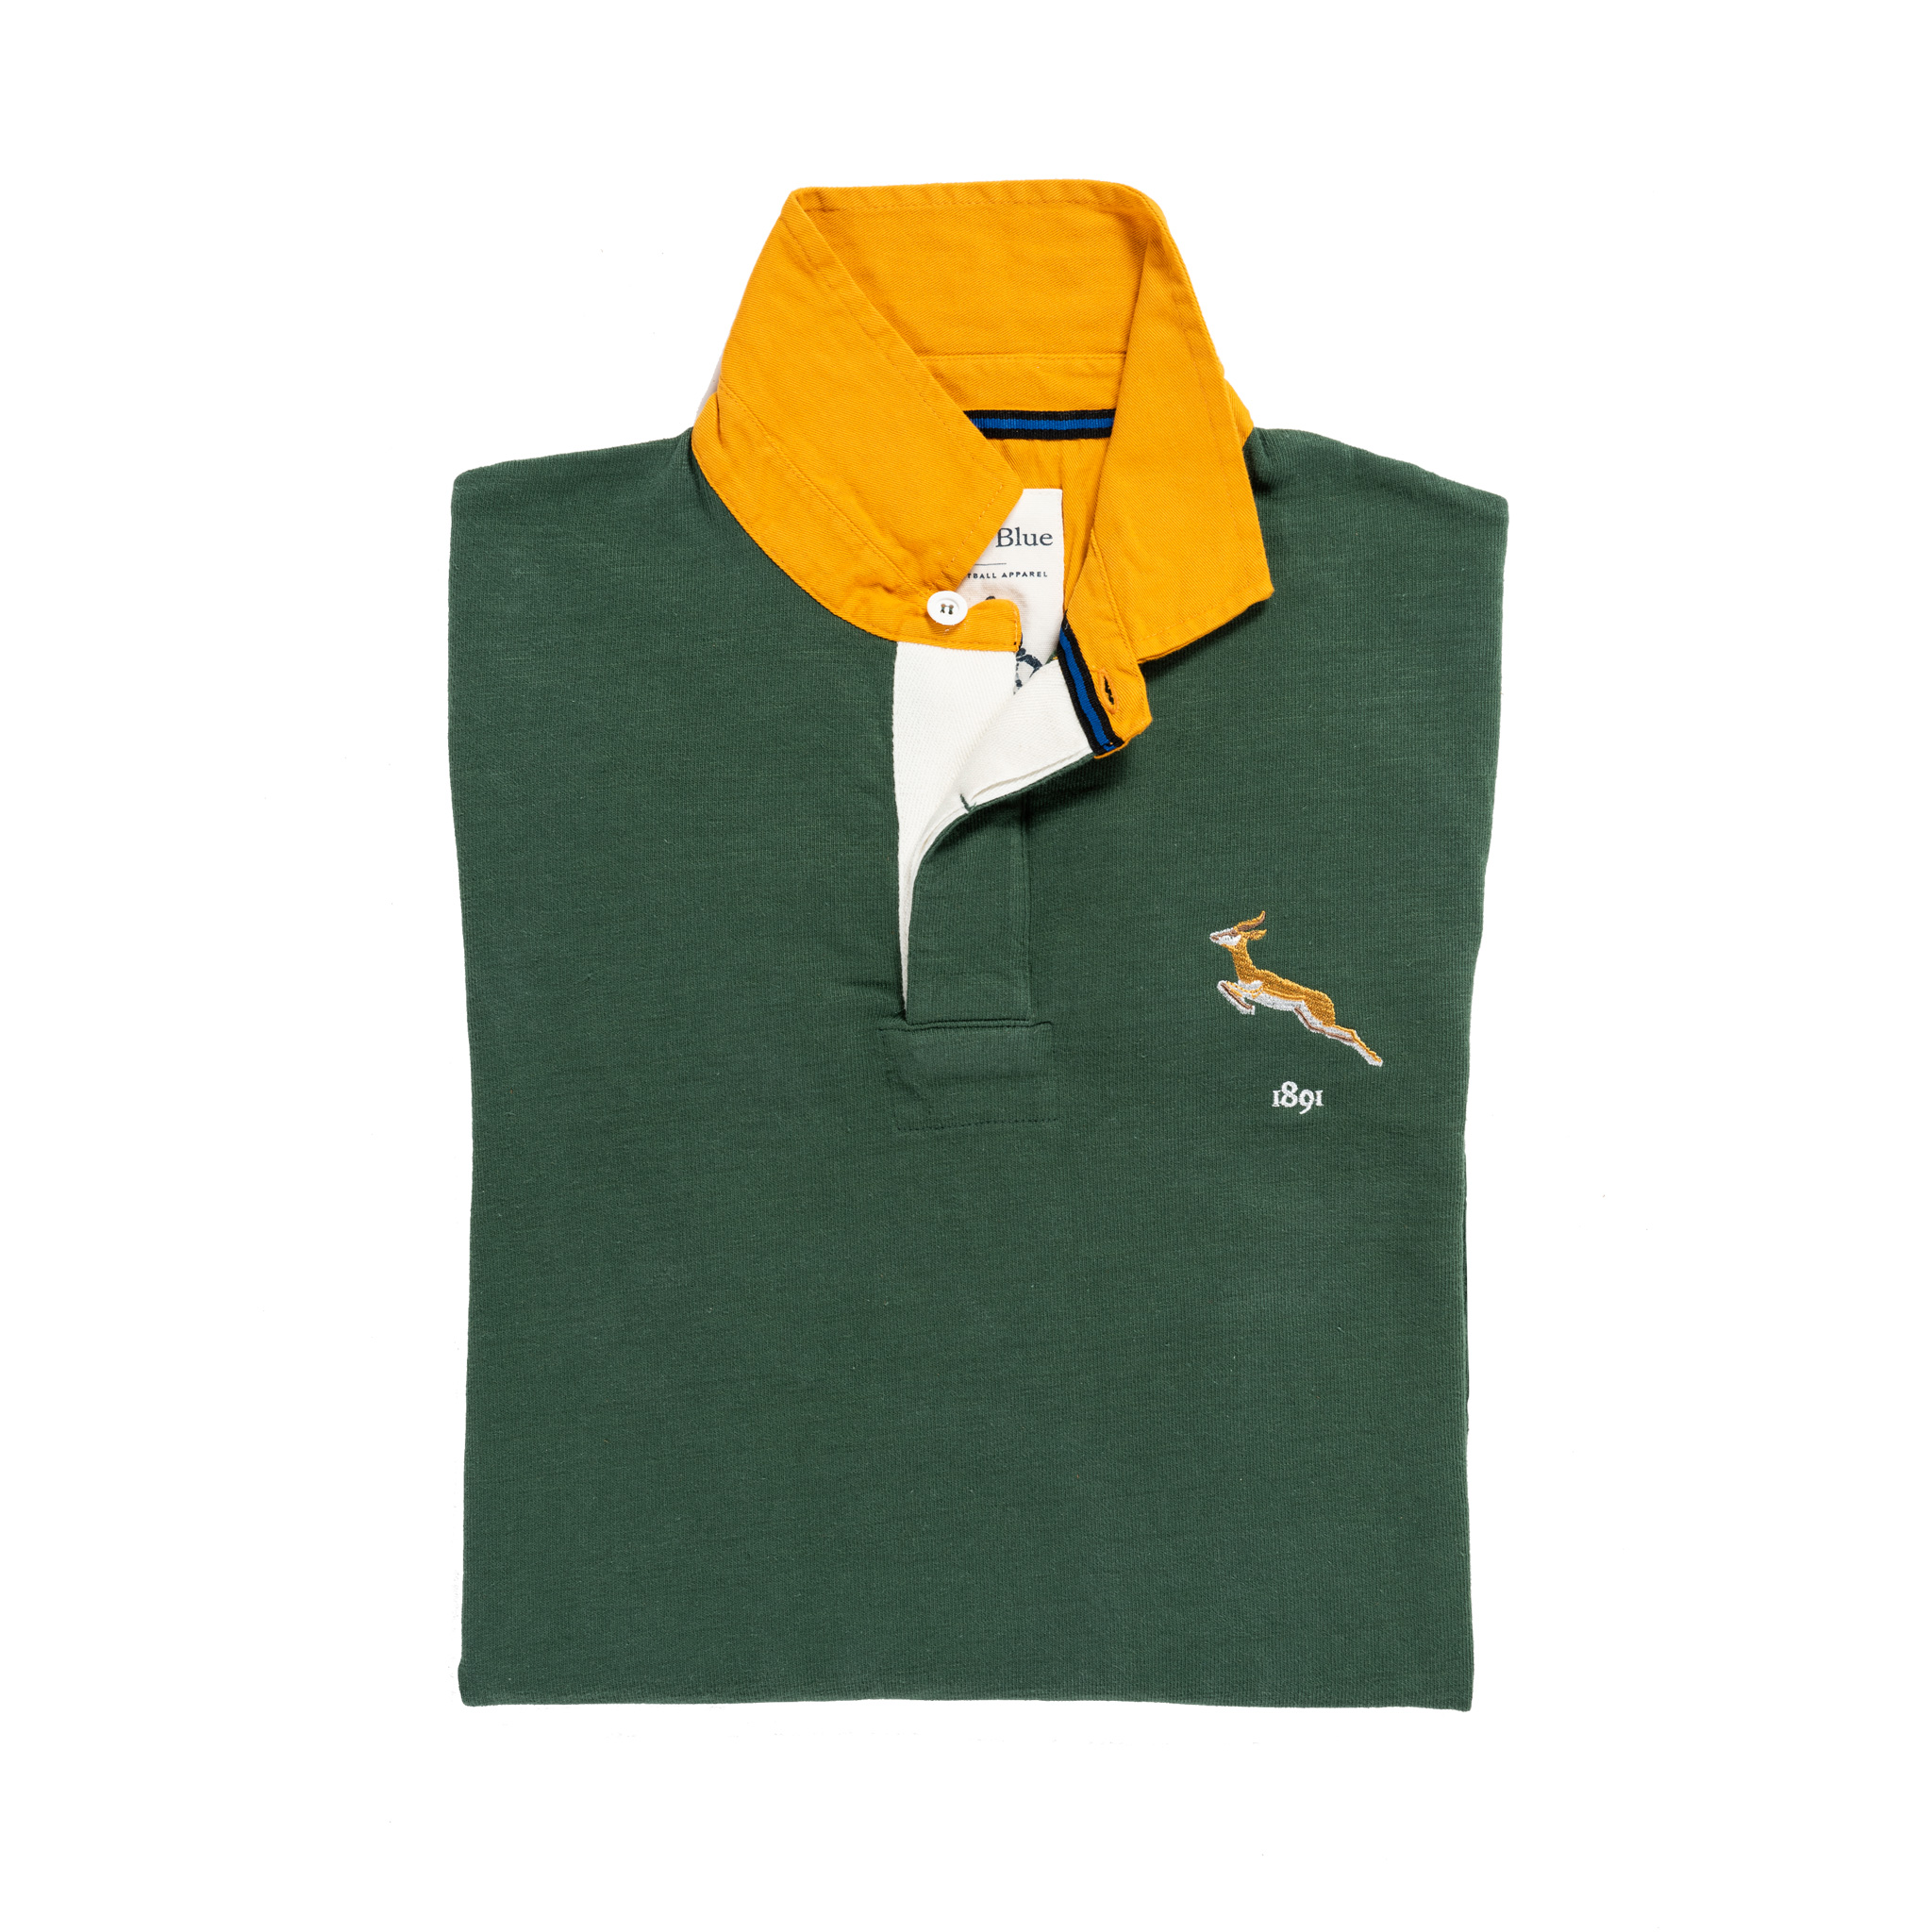 South Africa 1891 Vintage Rugby Shirt